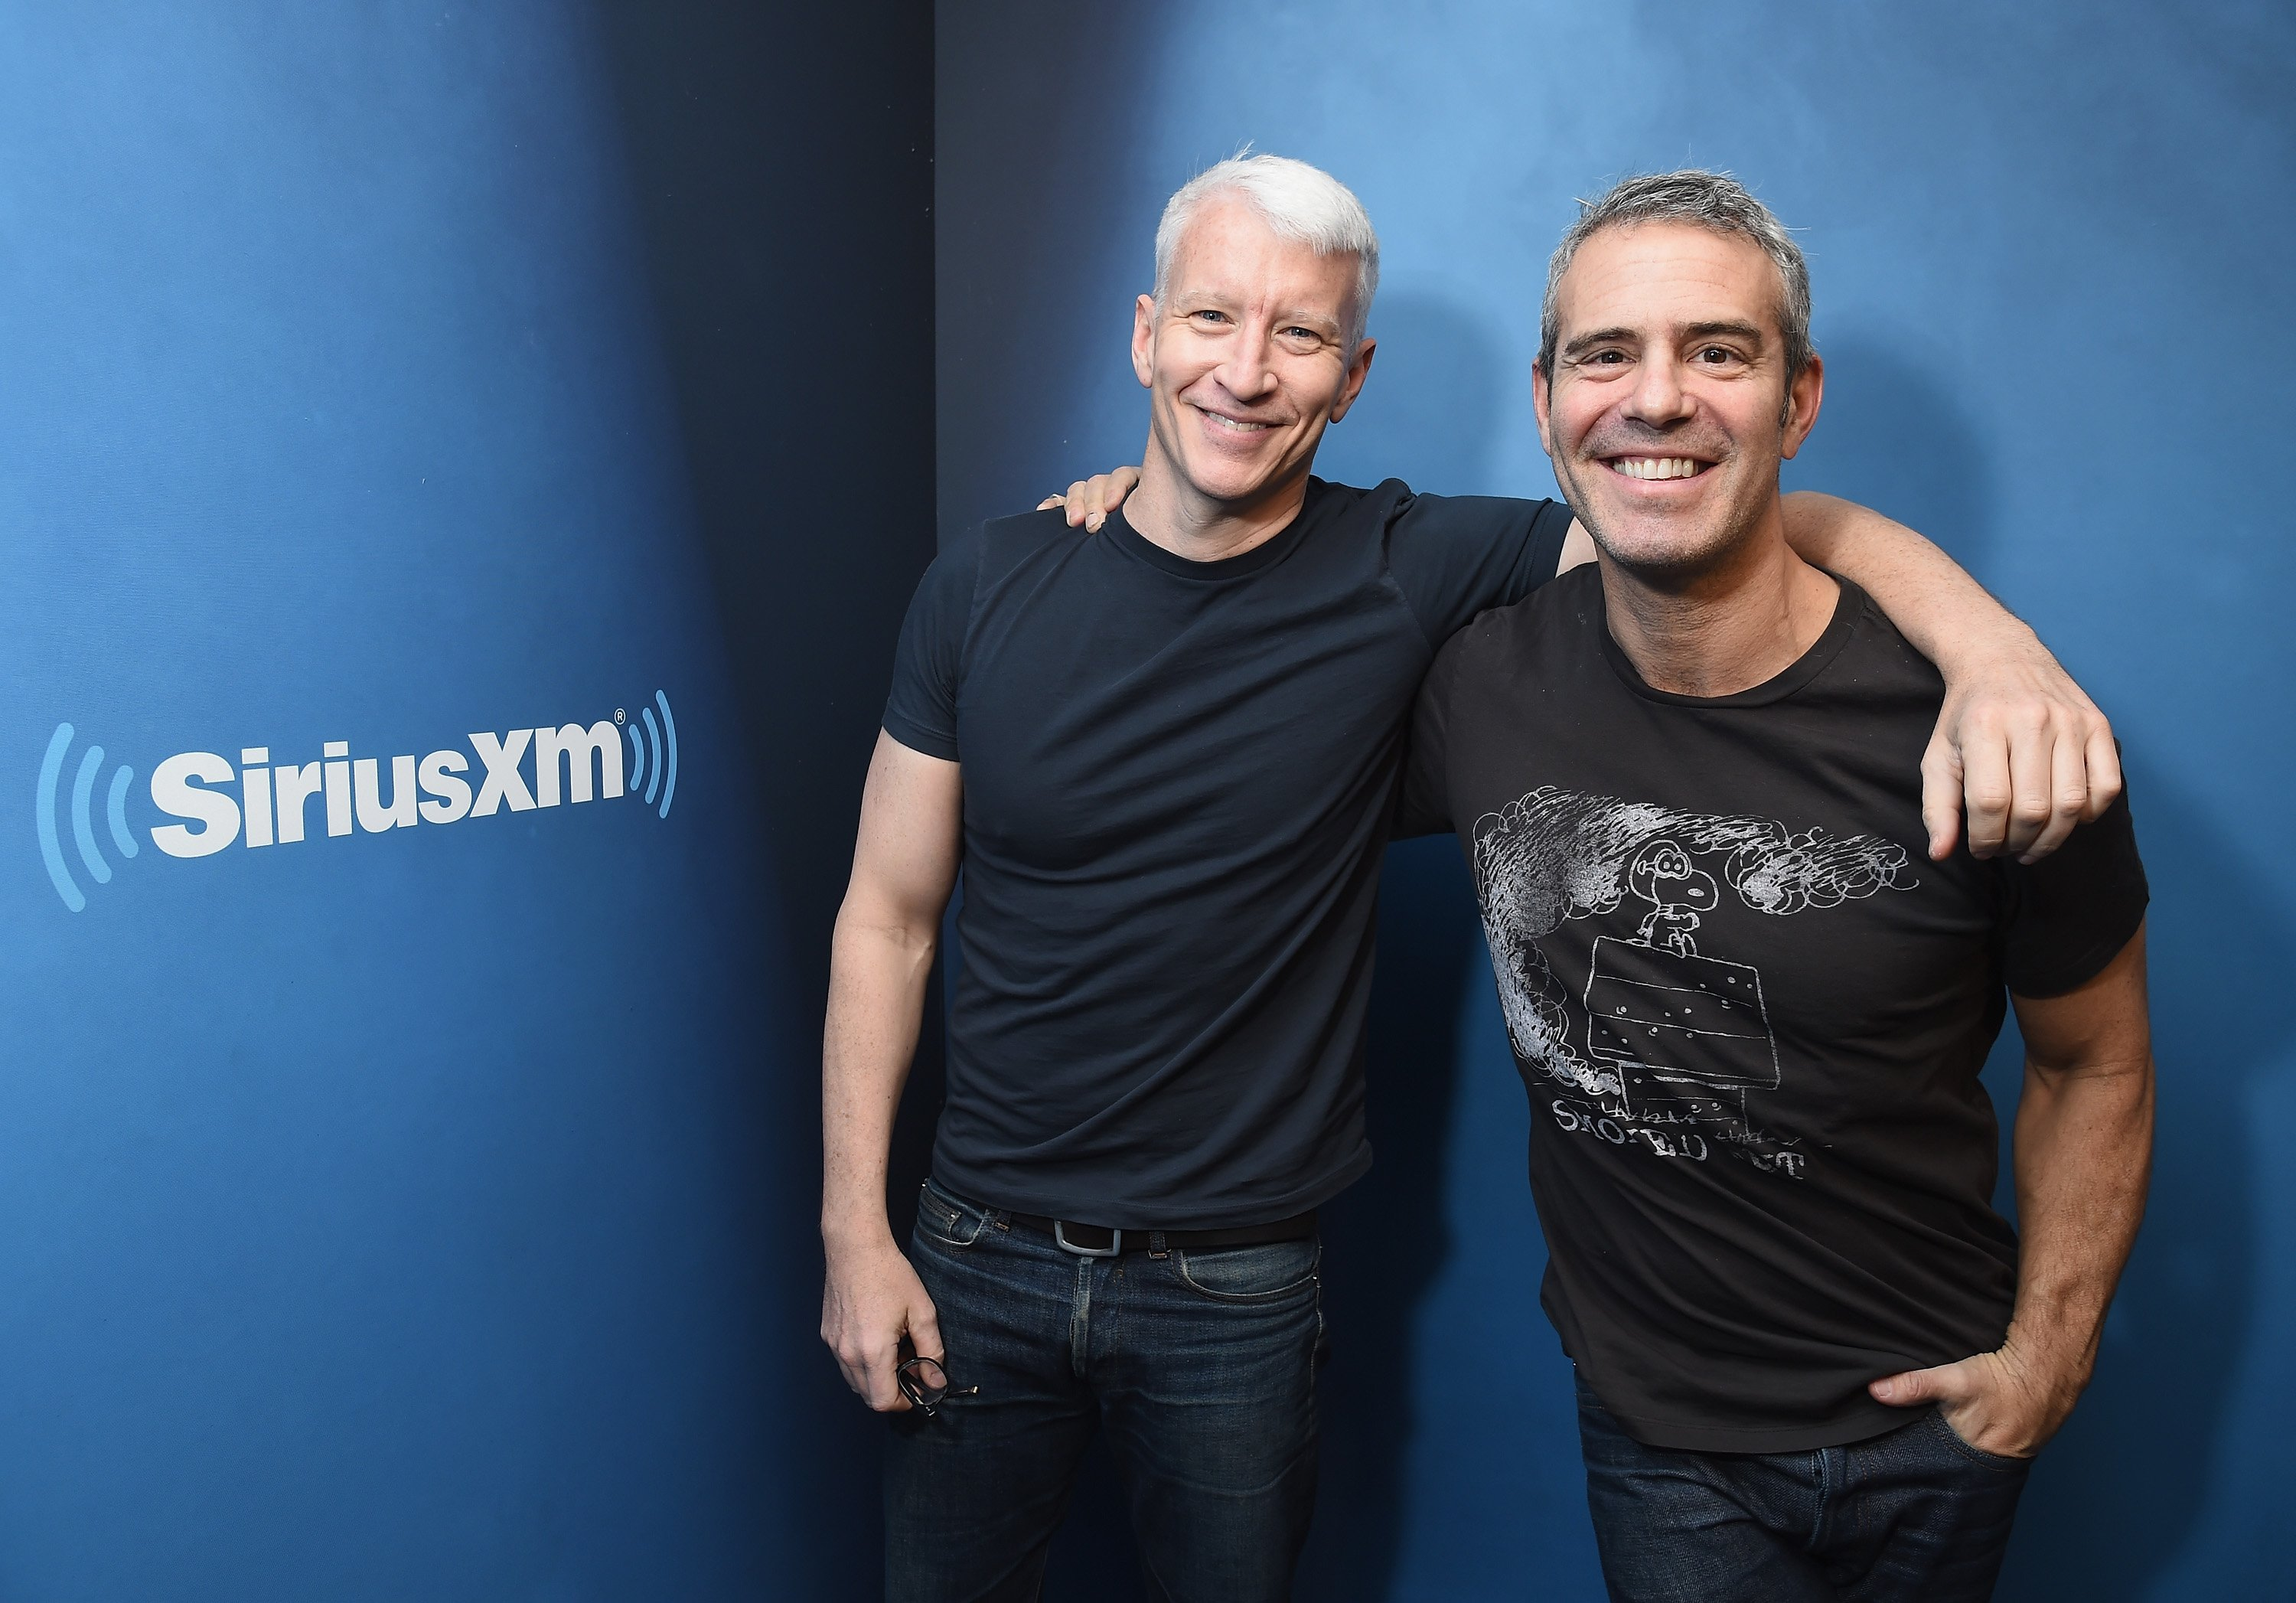 Anderson Cooper and host Andy Cohen at SiriusXM Studios on January 13, 2017 | Photo: GettyImages